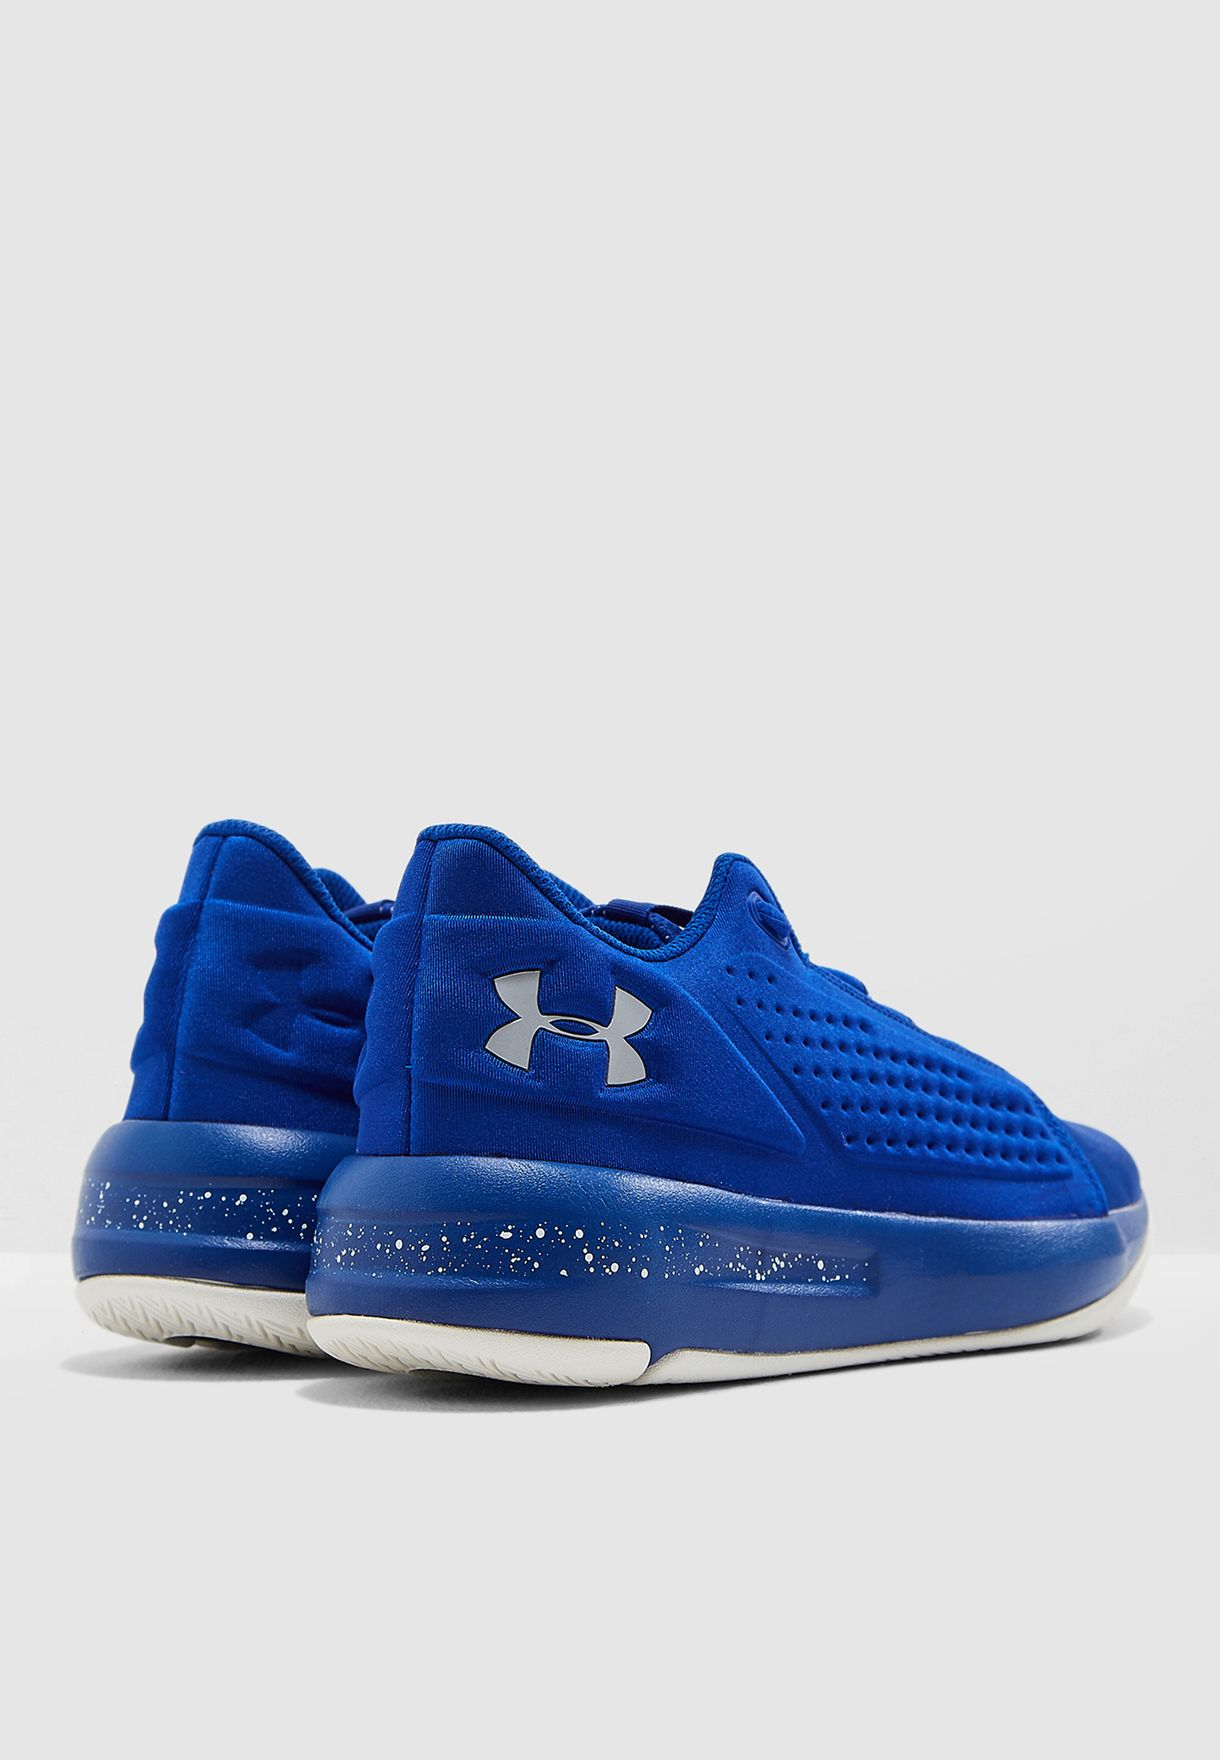 Shop Under Armour Blue Torch Low 3020621 400 For Men In Uae Messenger Bag Odate Abu